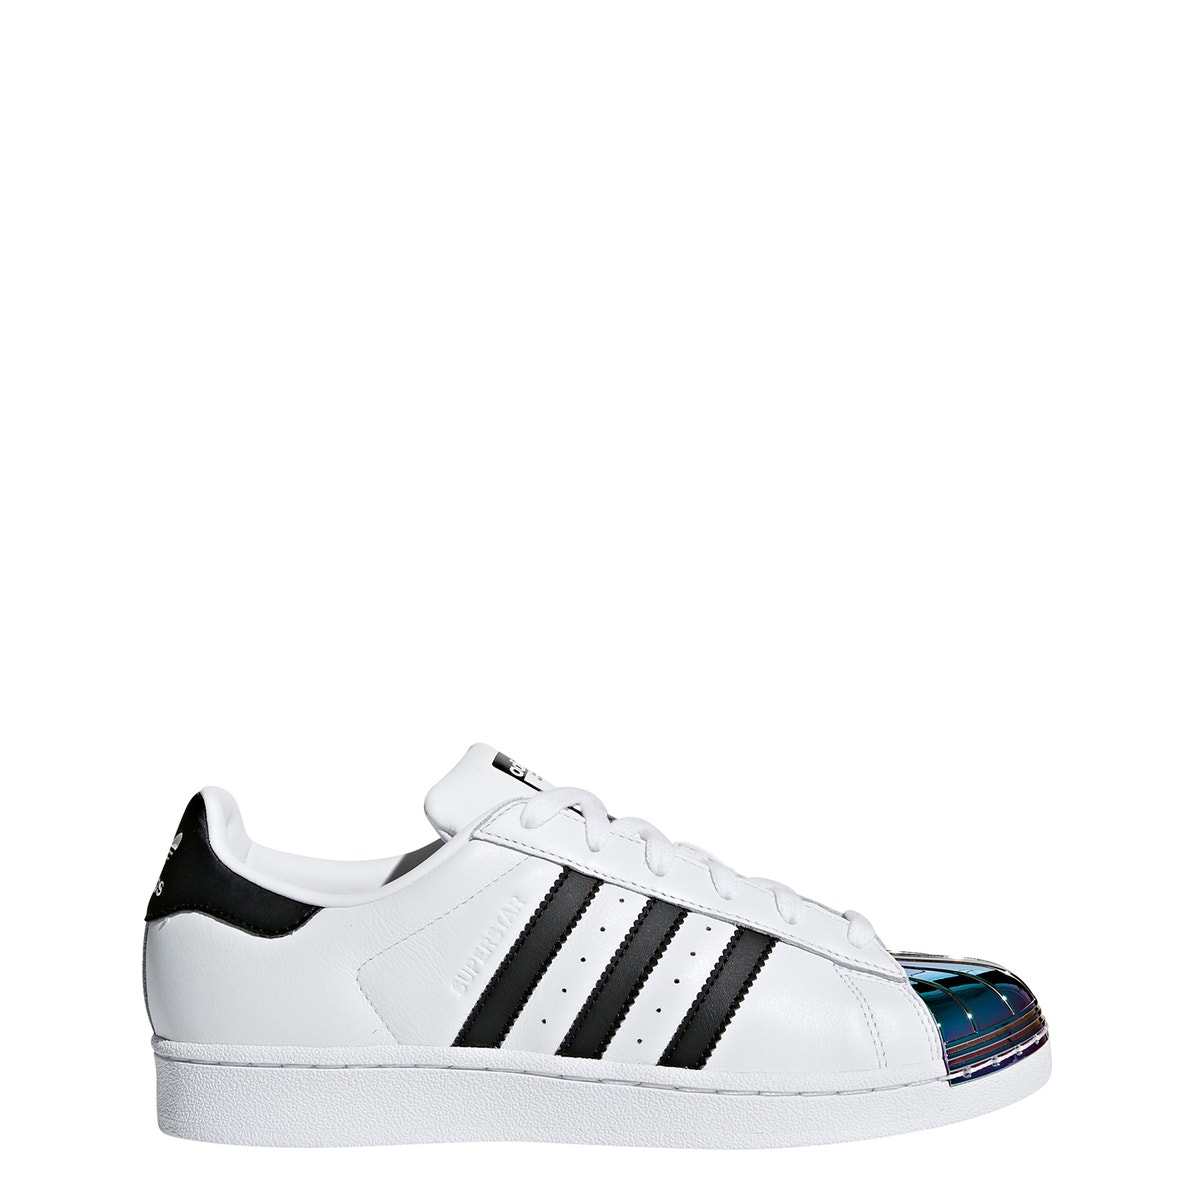 adidas Originals - ADIDAS ORIGINALS Superstar MT W 350103788 - 1123